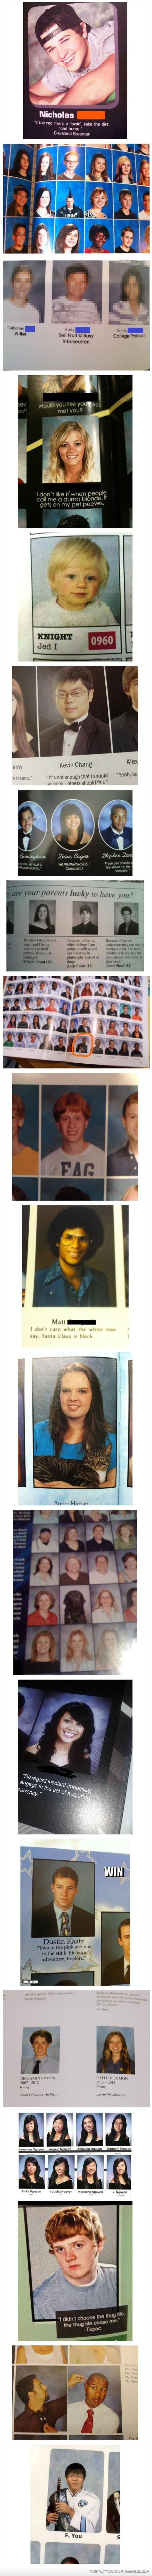 Great Moments In Yearbook Photo Awesomeness - WannaLoL !!!